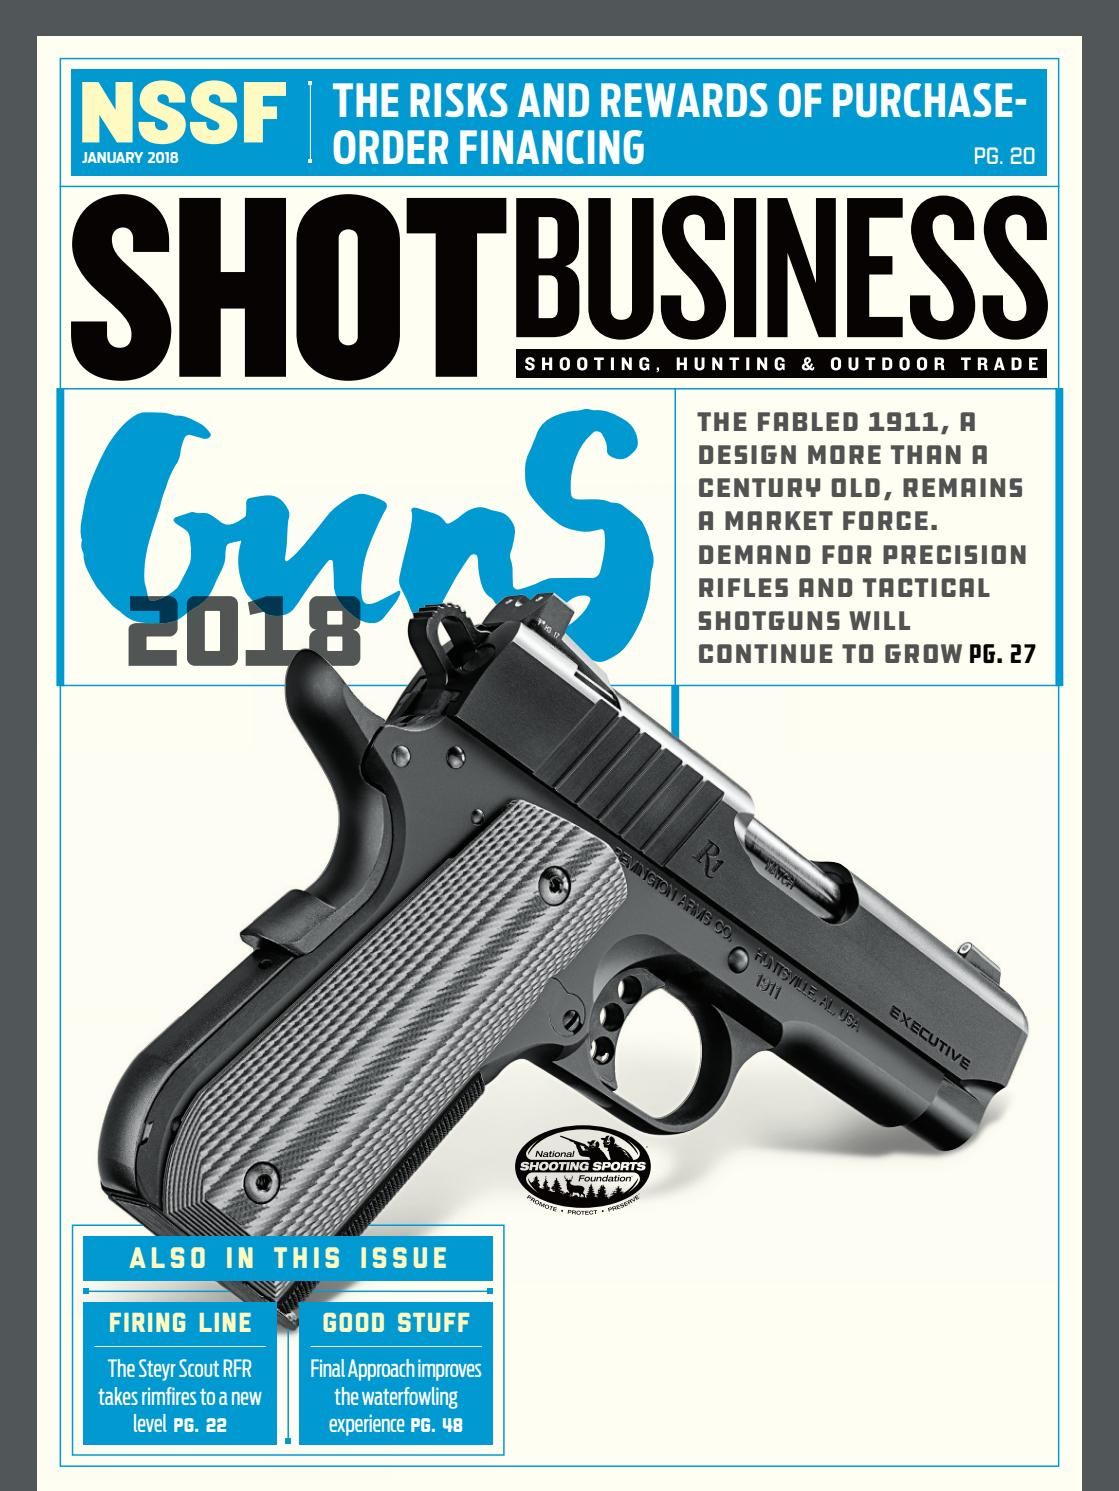 NSSF SHOT Business -- January, 2018 by SHOT Business - issuu